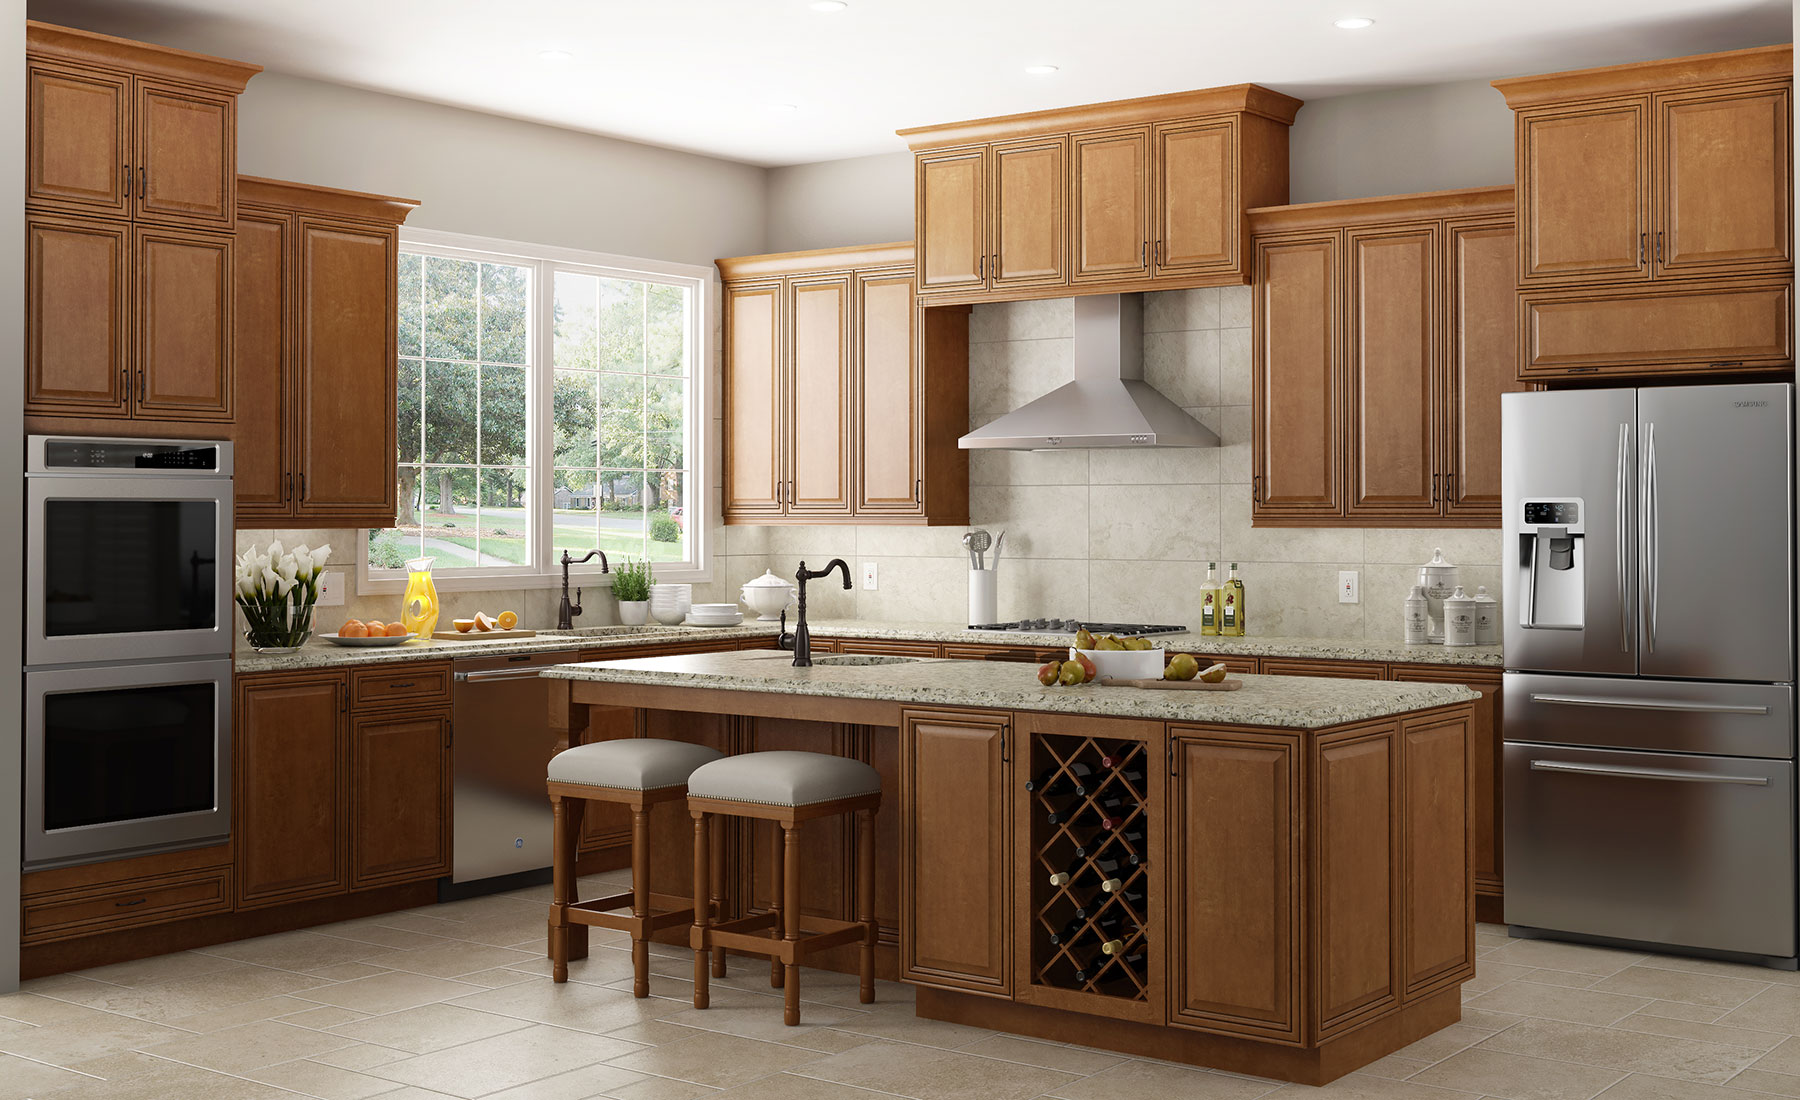 gallery pcs professional cabinet solutions designer kitchen rh pcscabinetry com  estate by rsi kitchen cabinets